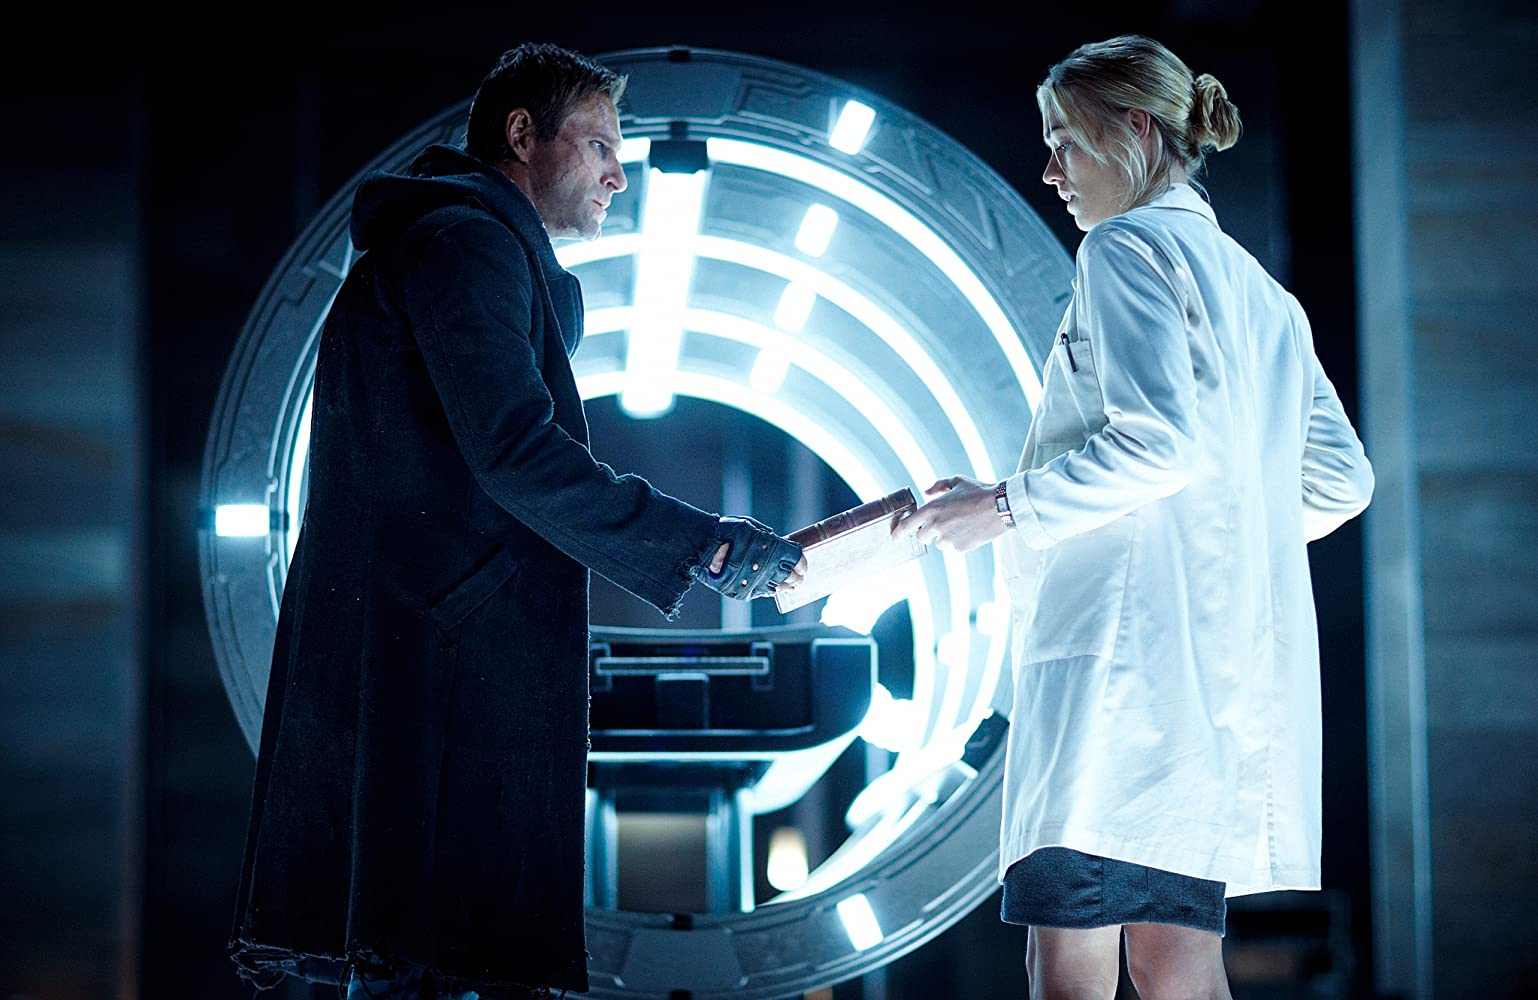 Aaron Eckhart and Yvonne Strahovski in I, Frankenstein (2014)